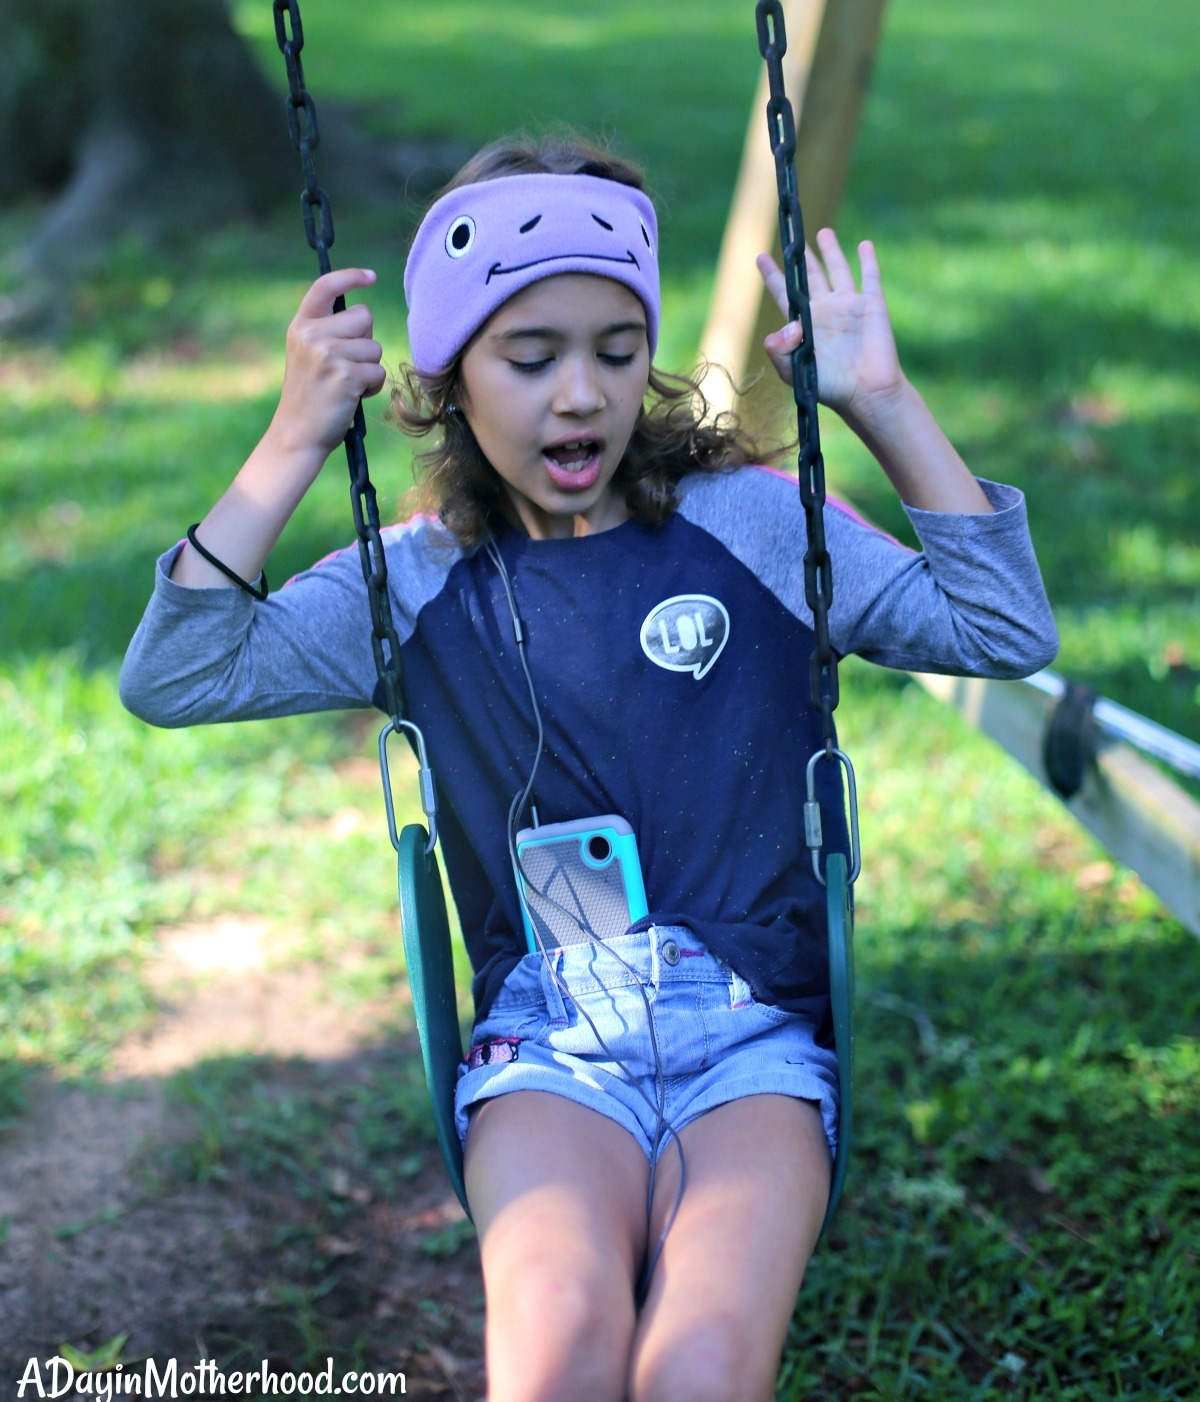 The Best Earphones for Kids, Hands Down, are CozyPhones and watch them sing